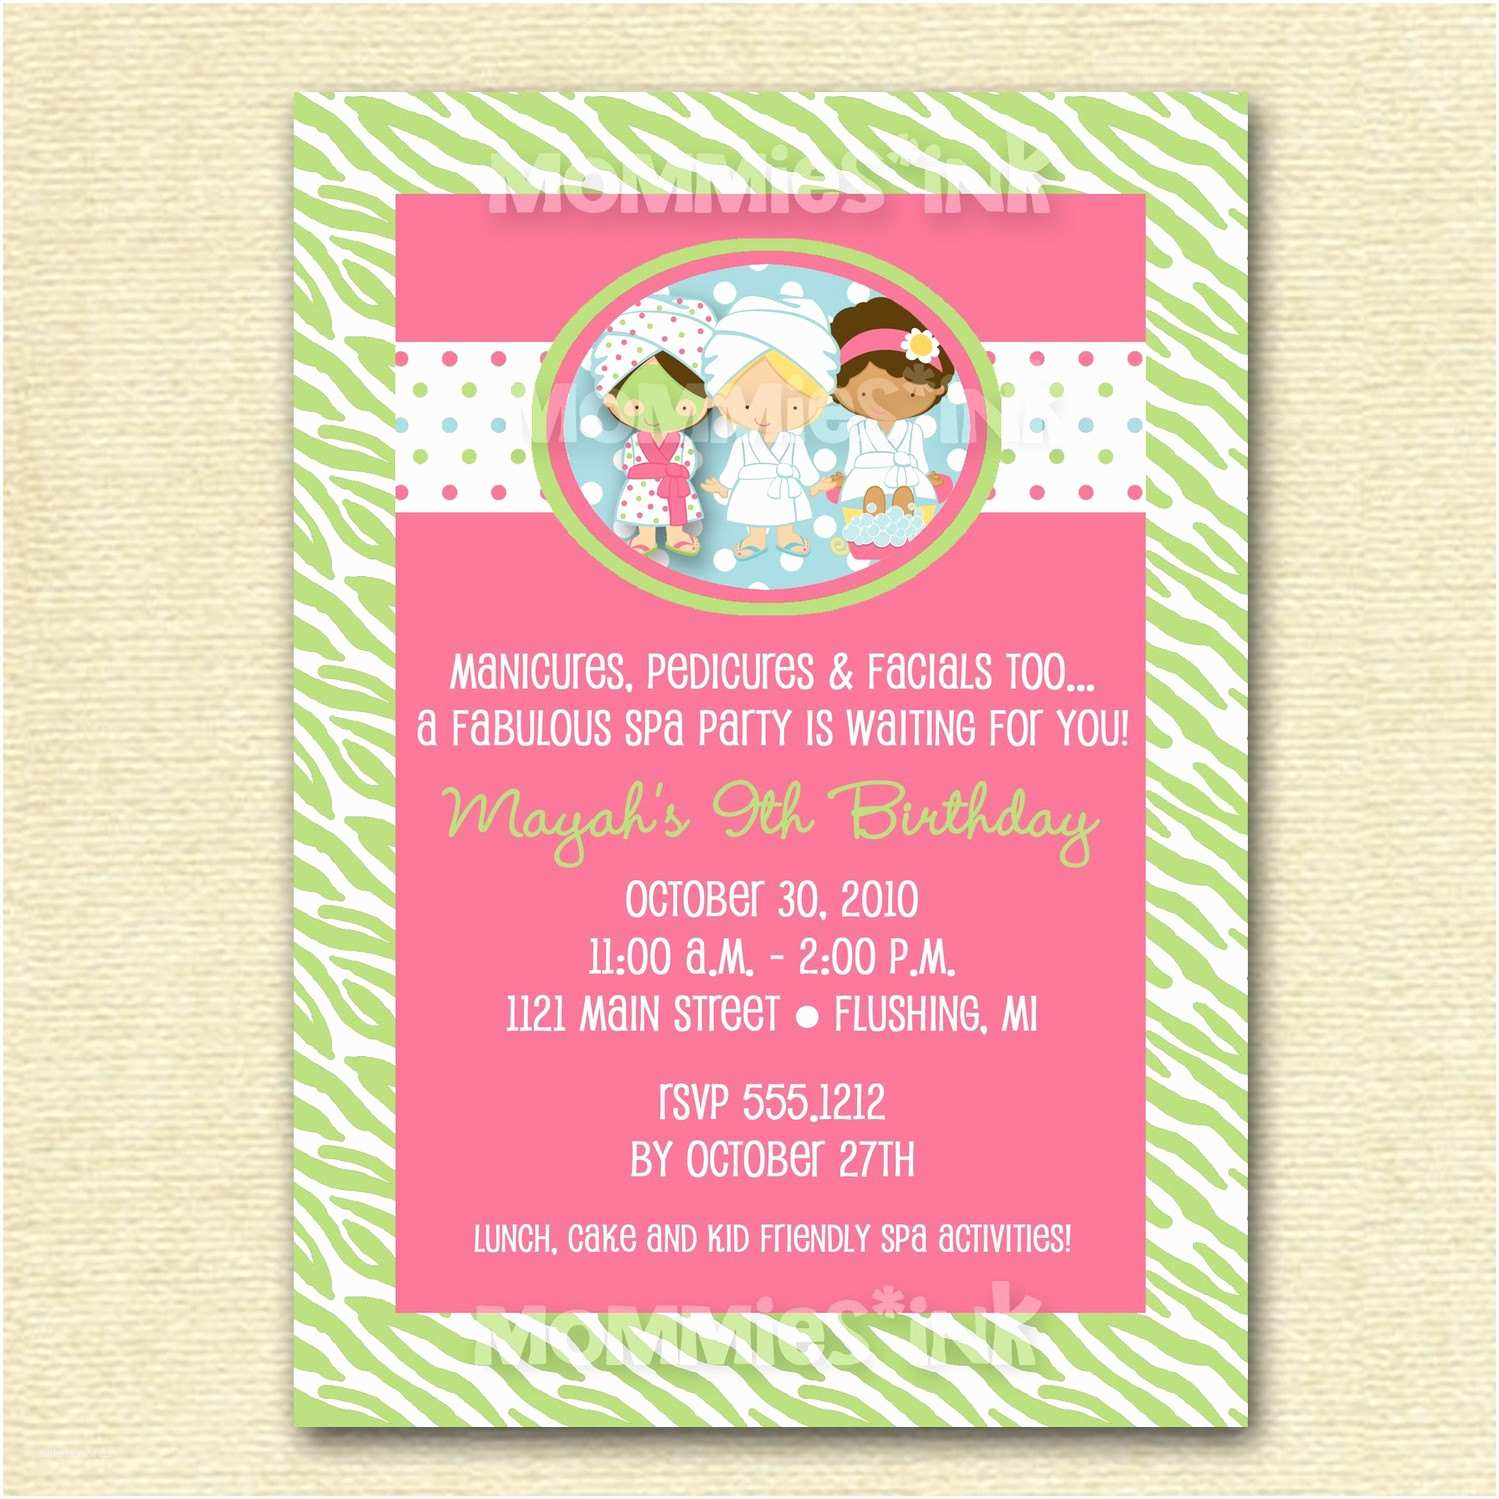 Spa Party Invitations Modern Spa Party Birthday Invite Printable Invitation Design